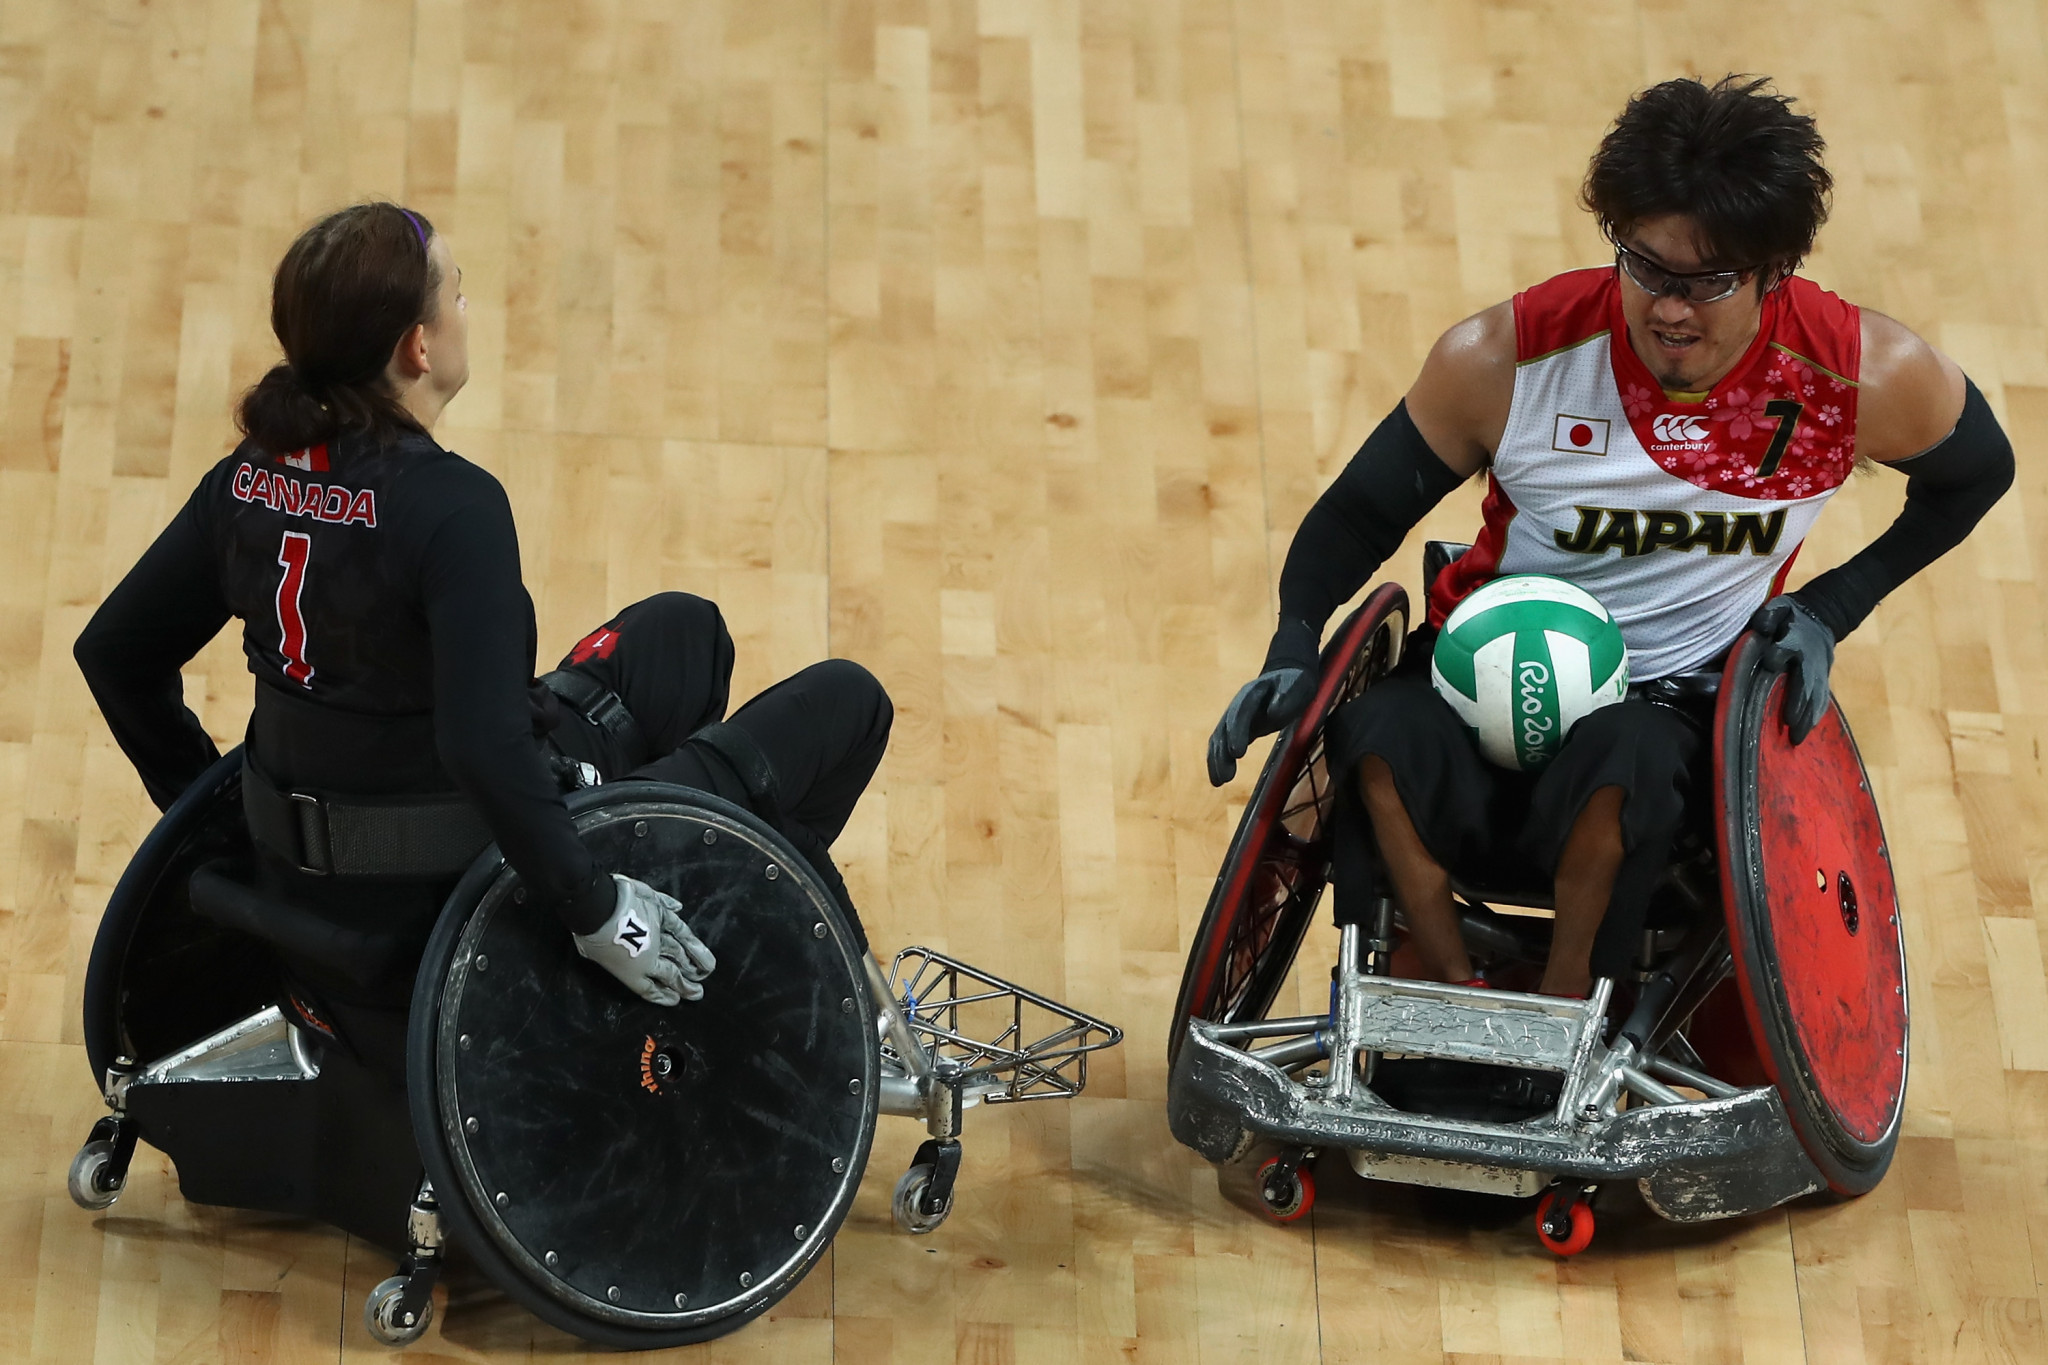 Daisuke Ikezaki is nominated for his MVP performance in the 2018 Wheelchair Rugby World Championship as Japan beat Australia in a tense final ©Getty Images